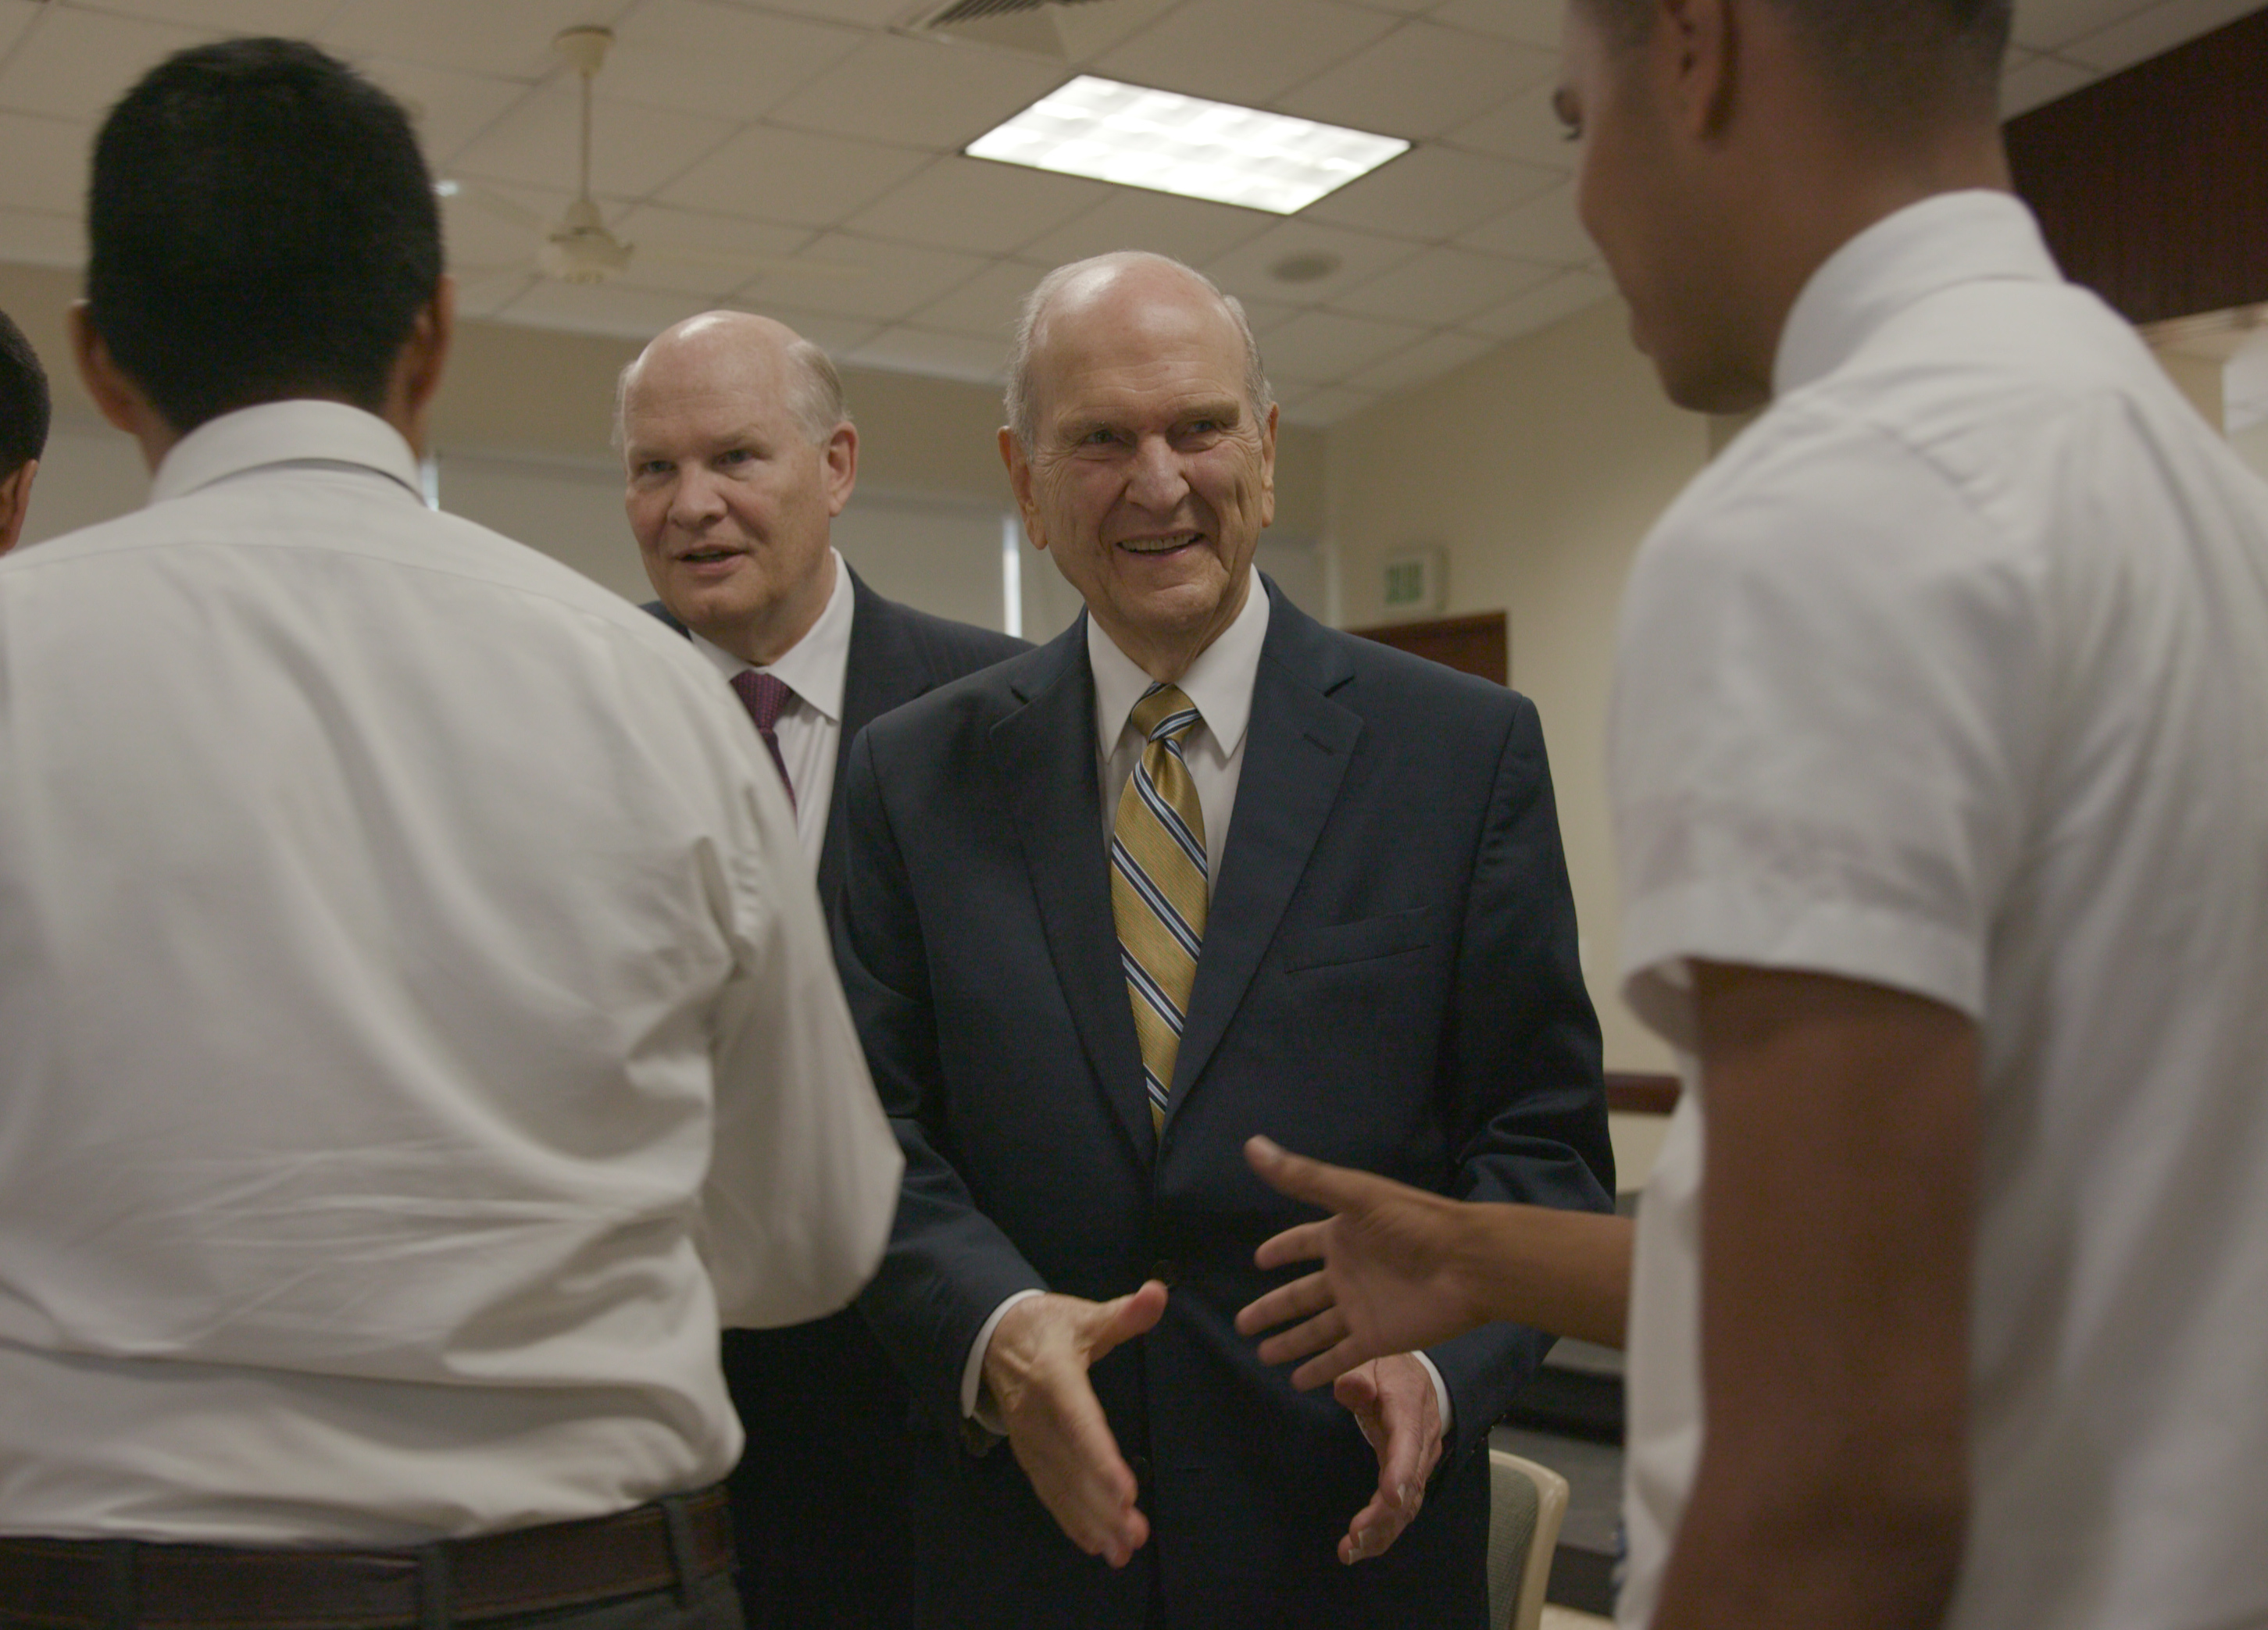 President Russell M. Nelson, right, and Elder Dale G. Renlund shake hands with missionaries at a Sept. 1, 2018, missionary meeting in Santo Domingo, Dominican Republic.